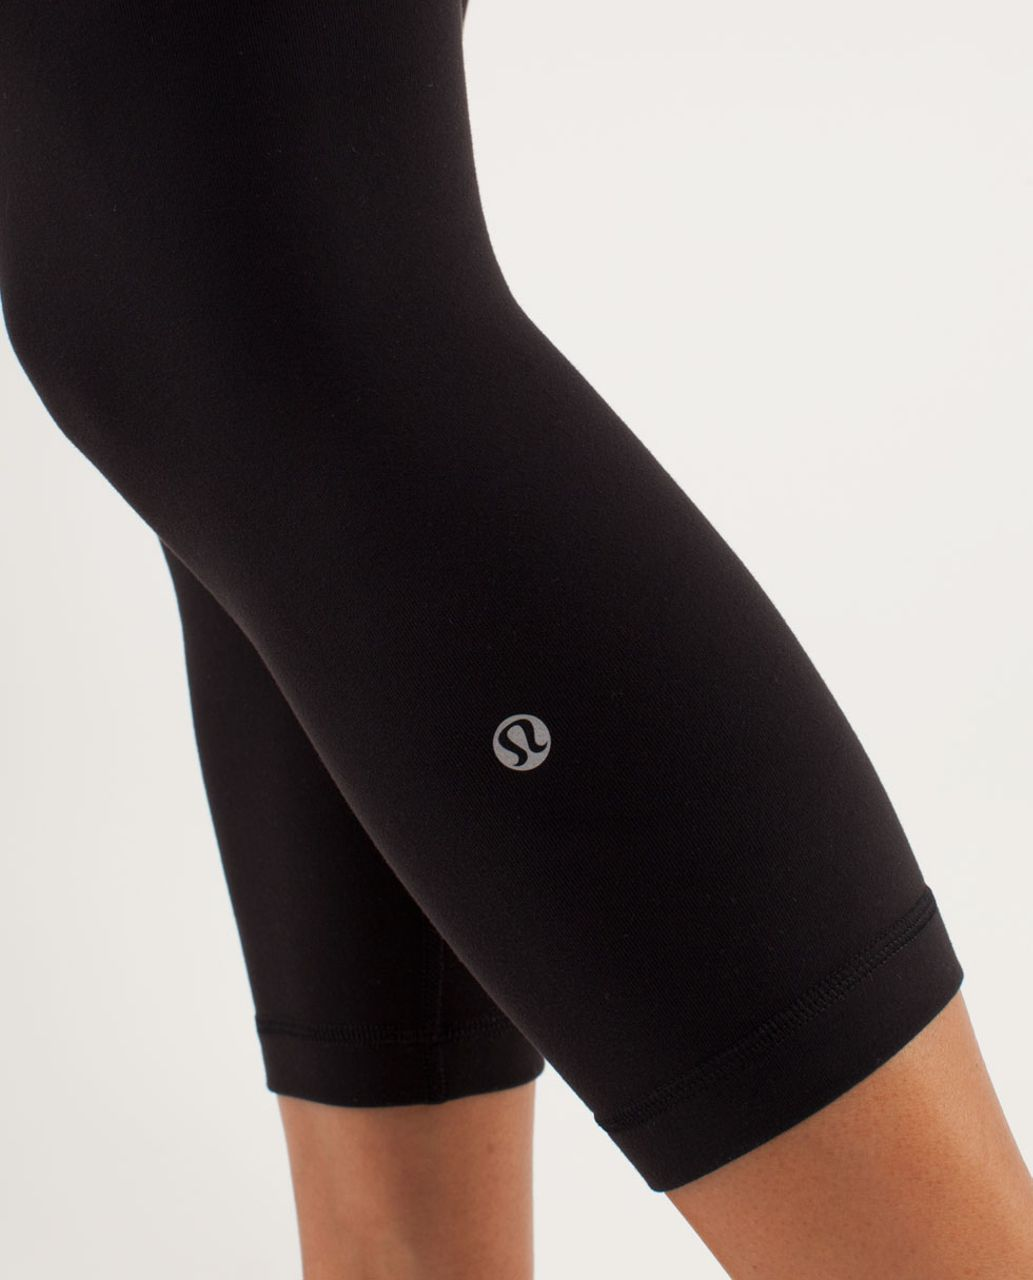 Lululemon Wunder Under Crop *Reversible - Black / Transition Fall 12 Quilt 31 / Flash Light